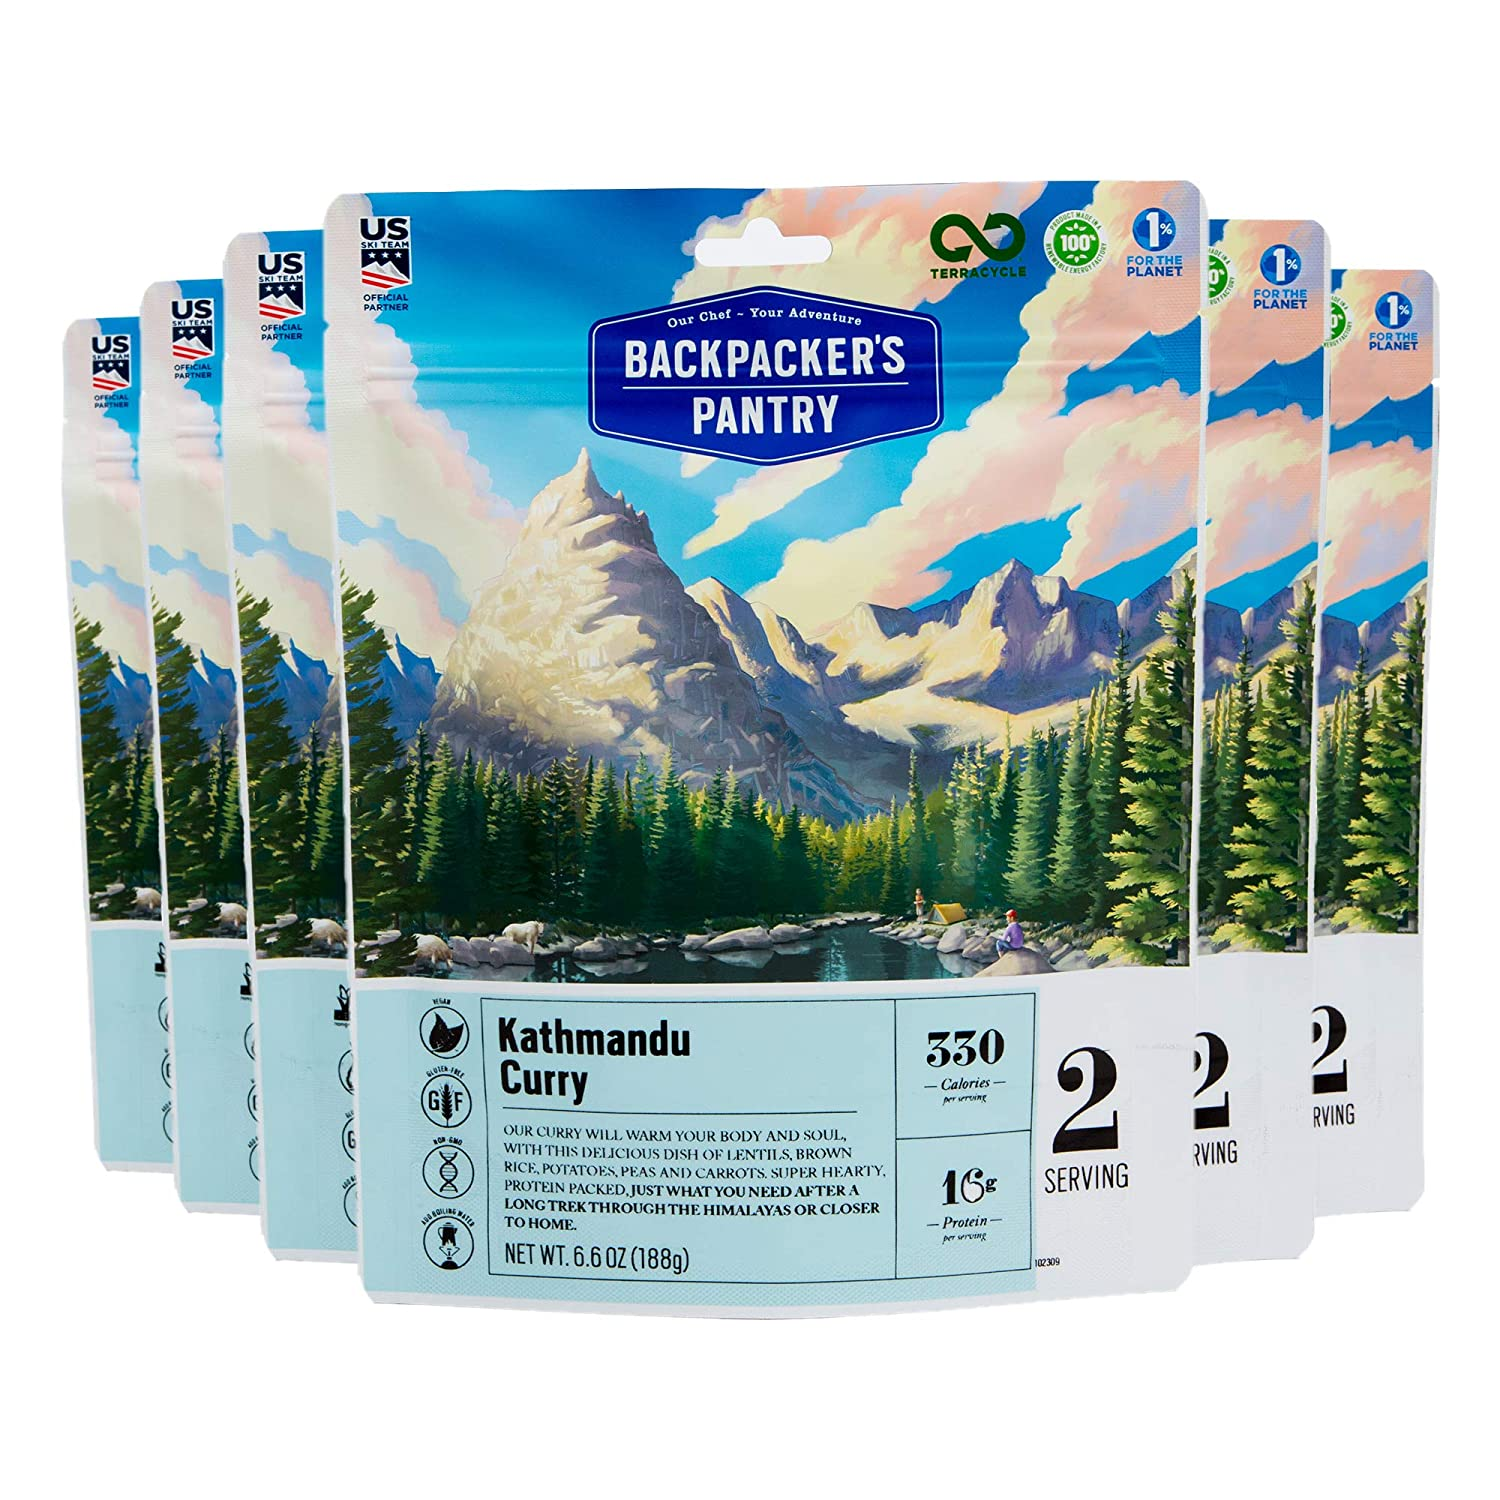 Backpacker's Pantry Kathmandu Curry, 2 Servings Per Pouch (6 Count), Freeze Dried Food, 16 Grams of Protein, Vegan, Gluten Free